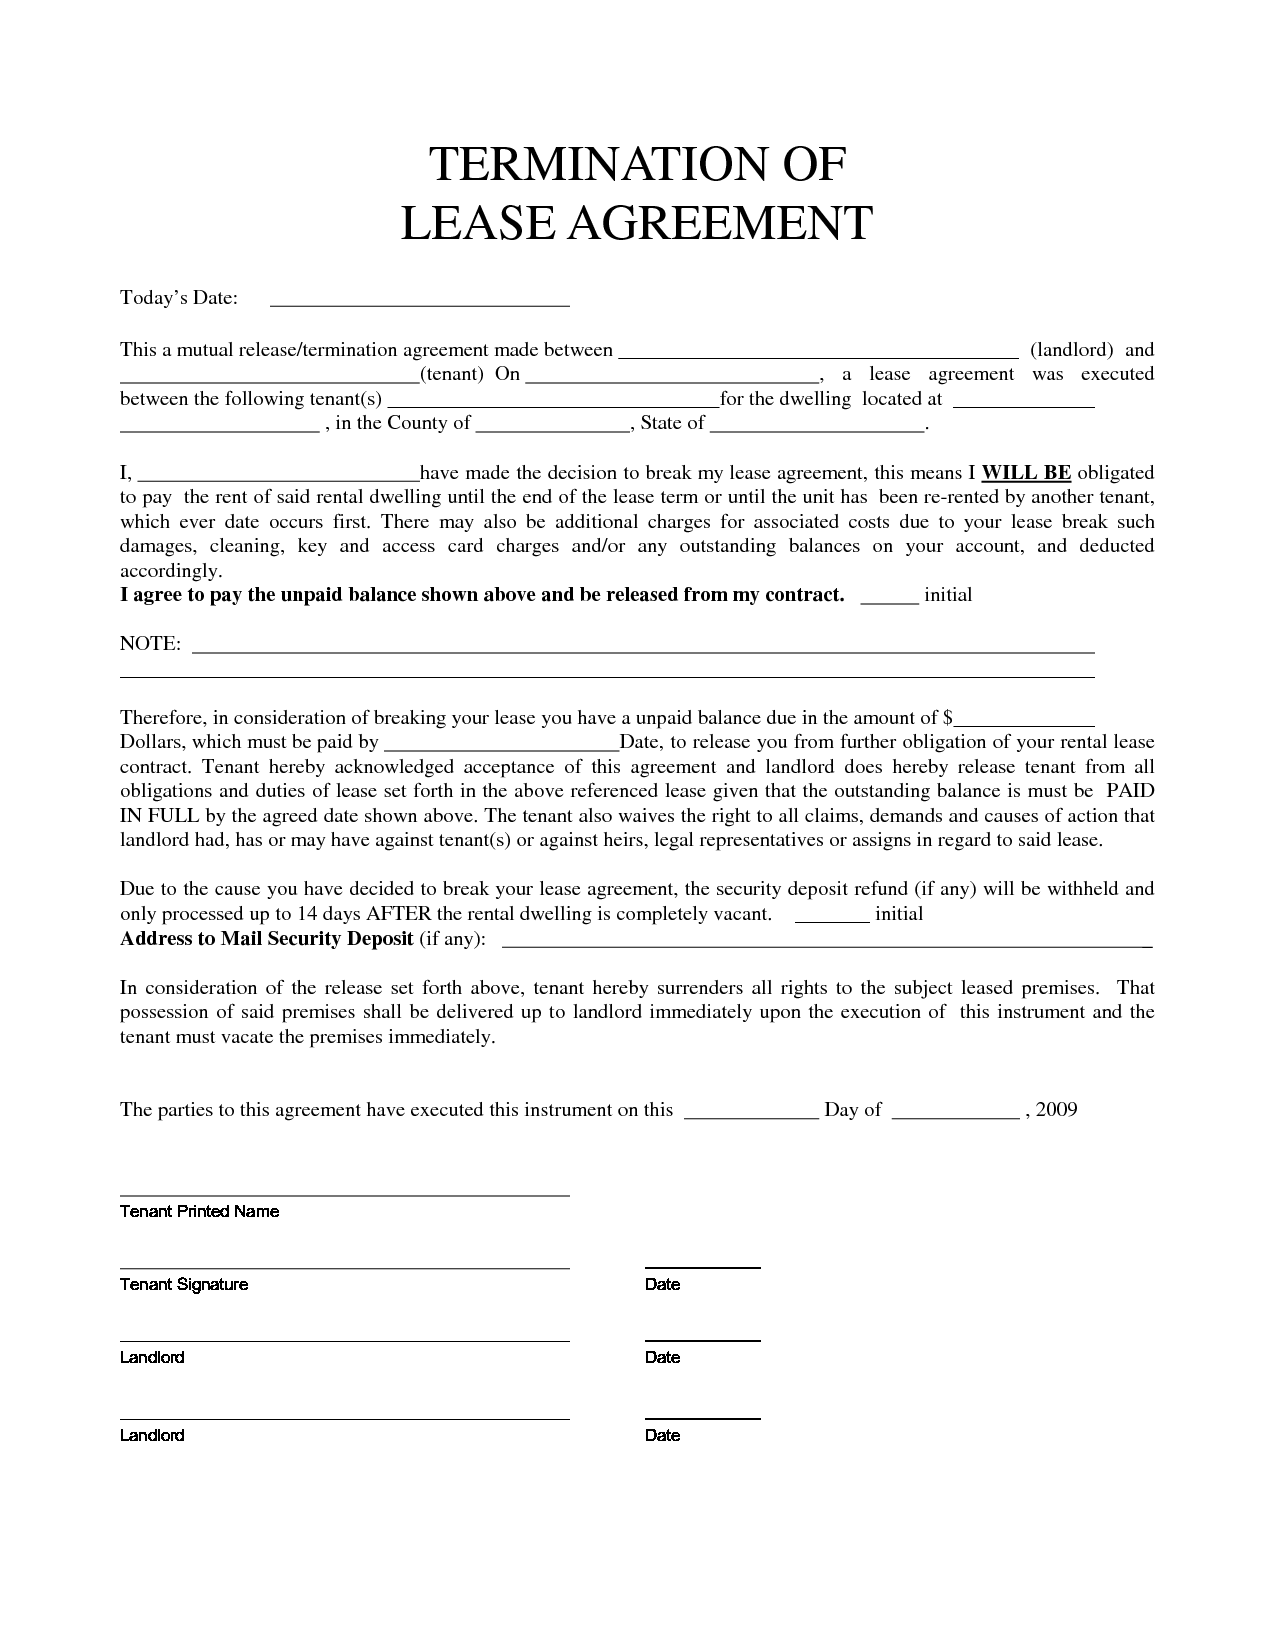 Personal Property Rental Agreement Forms – Sample House Lease Agreement Example